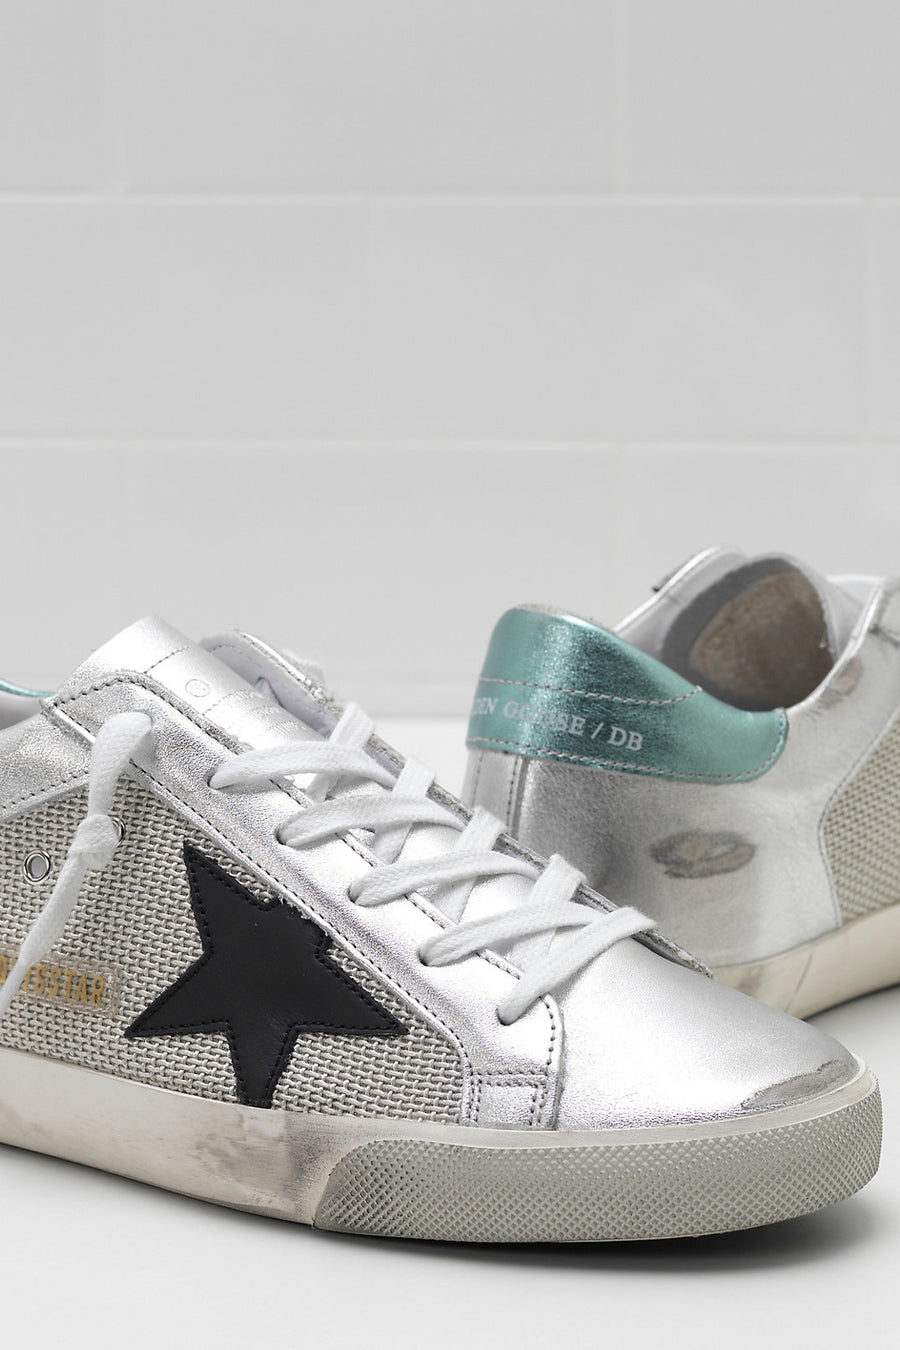 Superstar - White Silver Half-Green Laminated Leather